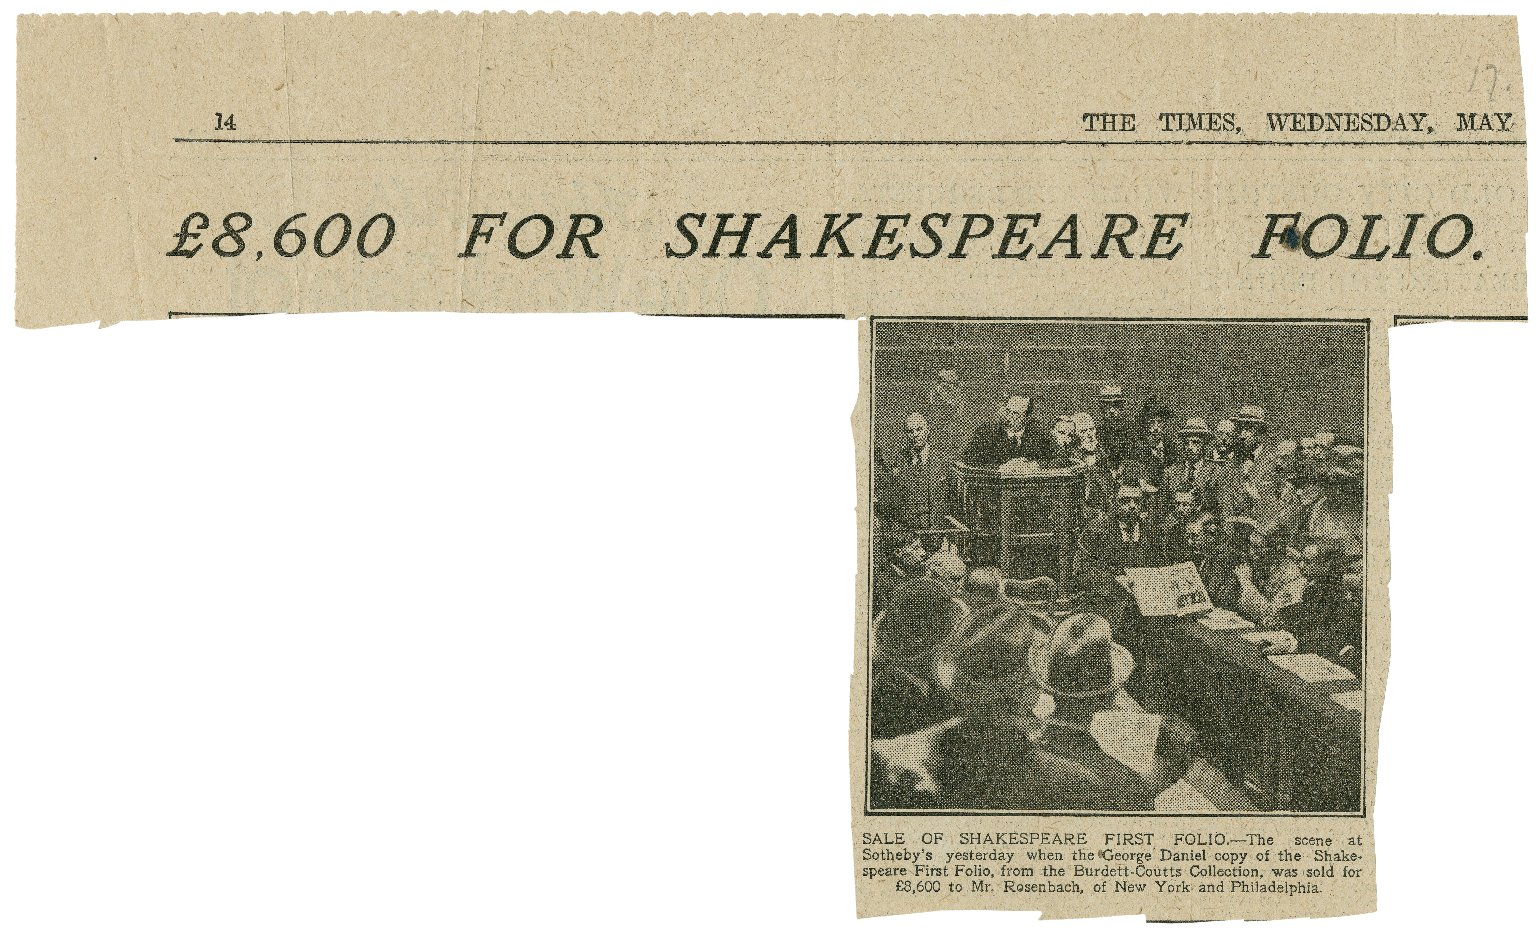 8,600 for Shakespeare Folio, [from May 17, 1922]